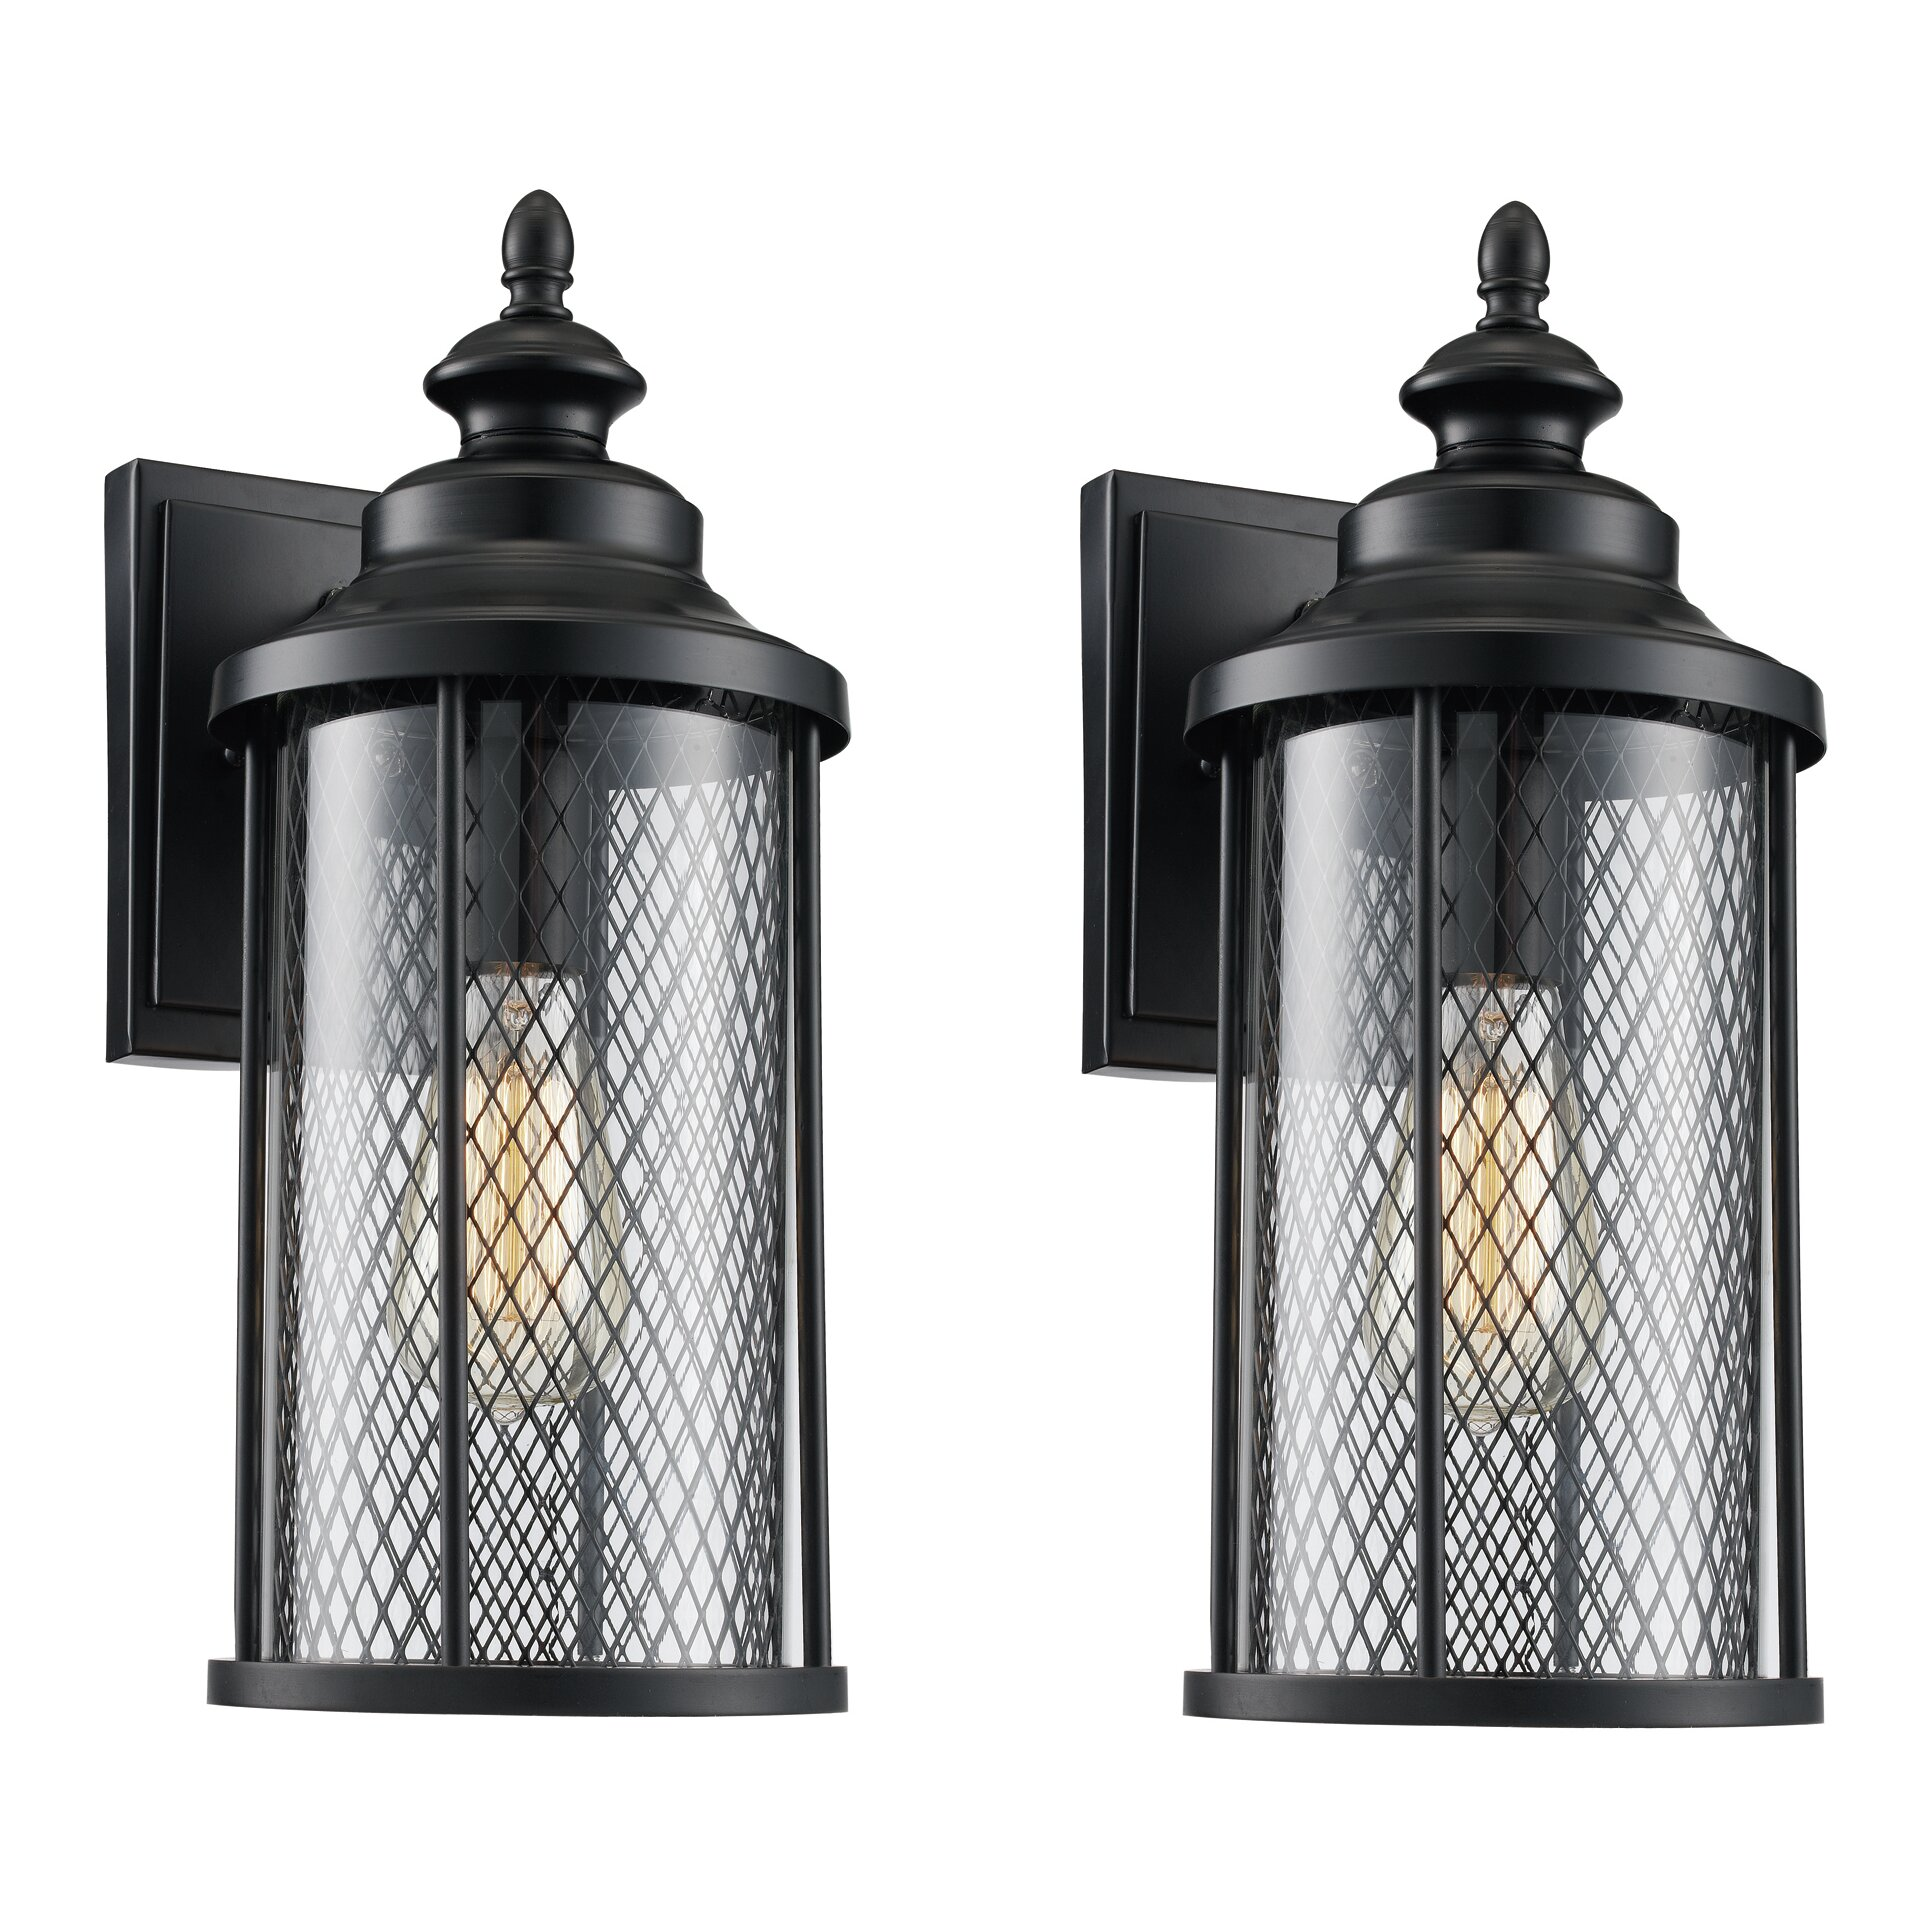 Laurel Foundry Modern Farmhouse Delilah 1 Light Outdoor Wall Lantern & Reviews Wayfair